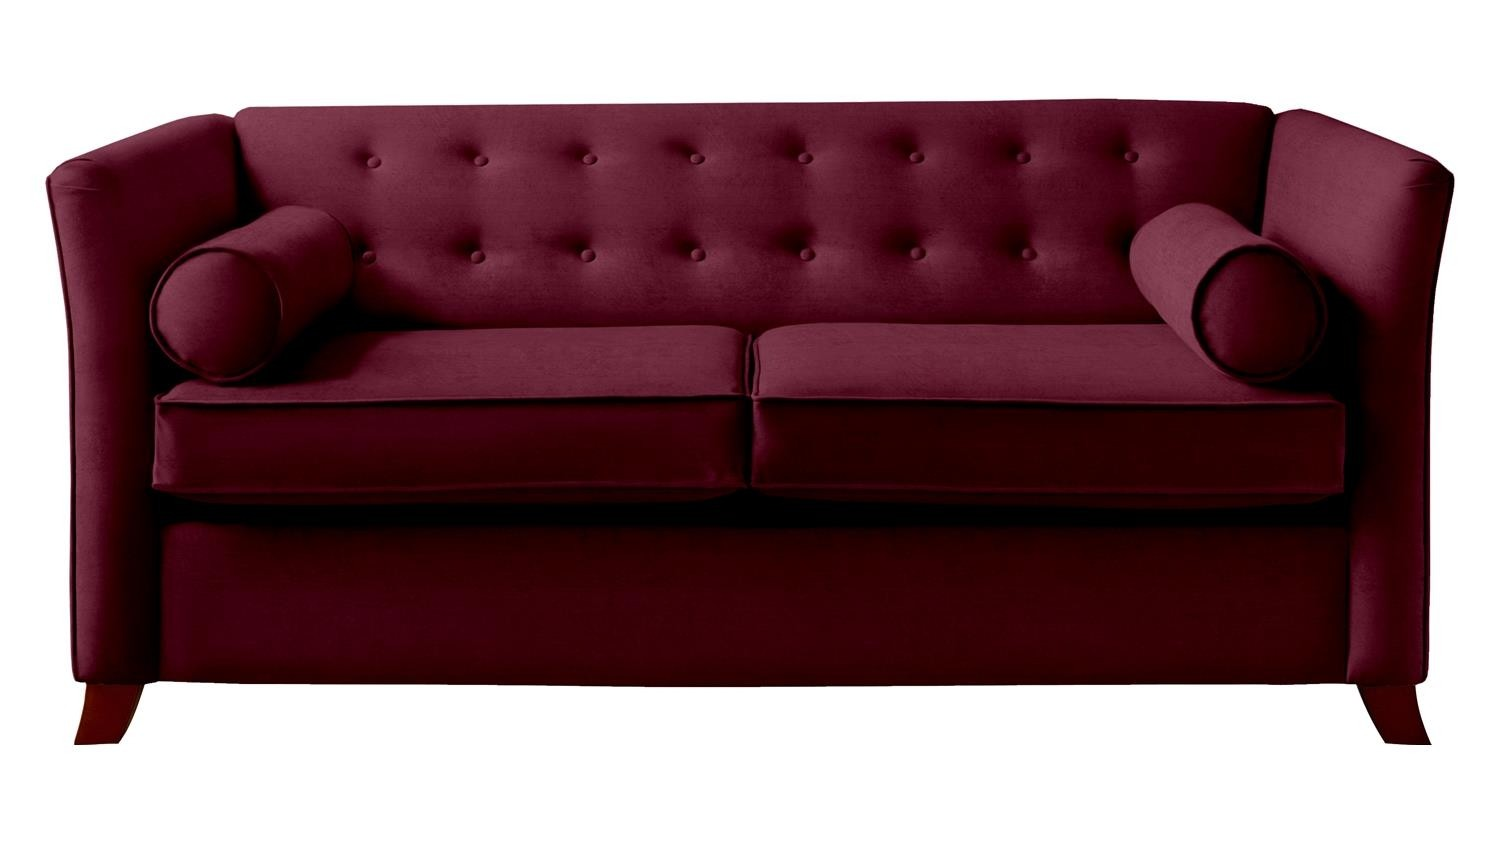 The Gastard 3.5 Seater Sofa Bed